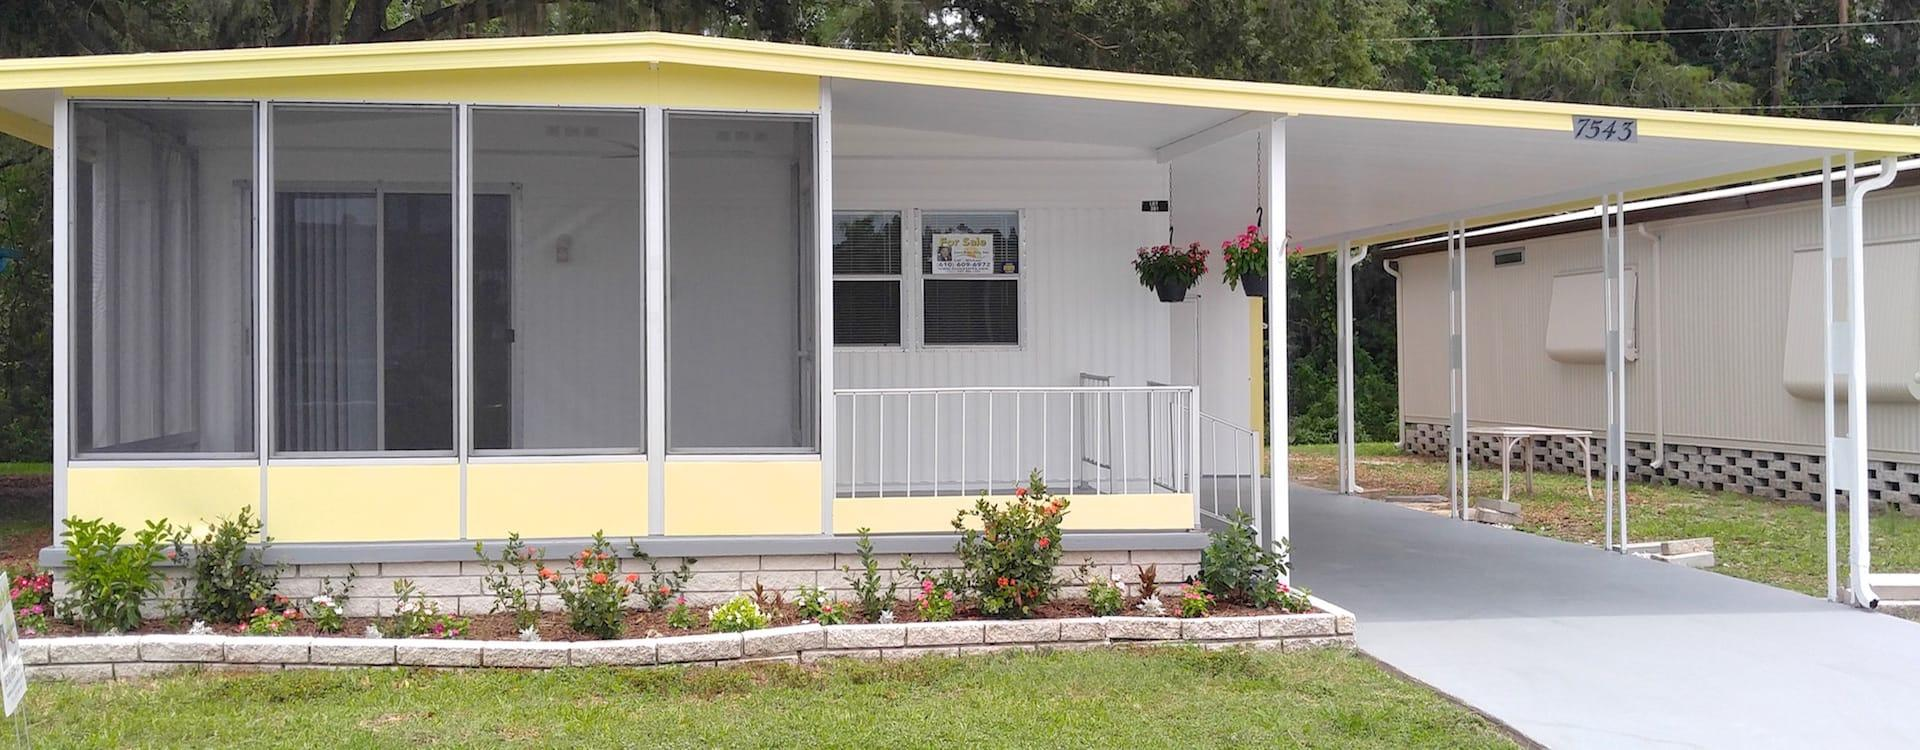 mobile-home-for-sale-20170612-002-Wide Mobile Home Parks Clearwater Fl on rent clearwater fl, city of clearwater fl, mobile home parks seminole florida, mobile home in clearwater florida, queen fleet deep sea fishing clearwater fl, restaurants clearwater fl, mobile home 55 plus communities, apartments clearwater fl, mobile home parks bellingham wa, mobile home parks tampa florida area, mobile home park tampa fl, retirement communities clearwater fl, timeshares clearwater fl, churches clearwater fl, mobile home communities florida, clubs clearwater fl, mobile home parks largo florida, coachman park clearwater fl, mobile homes florida keys fl, home builders clearwater fl,